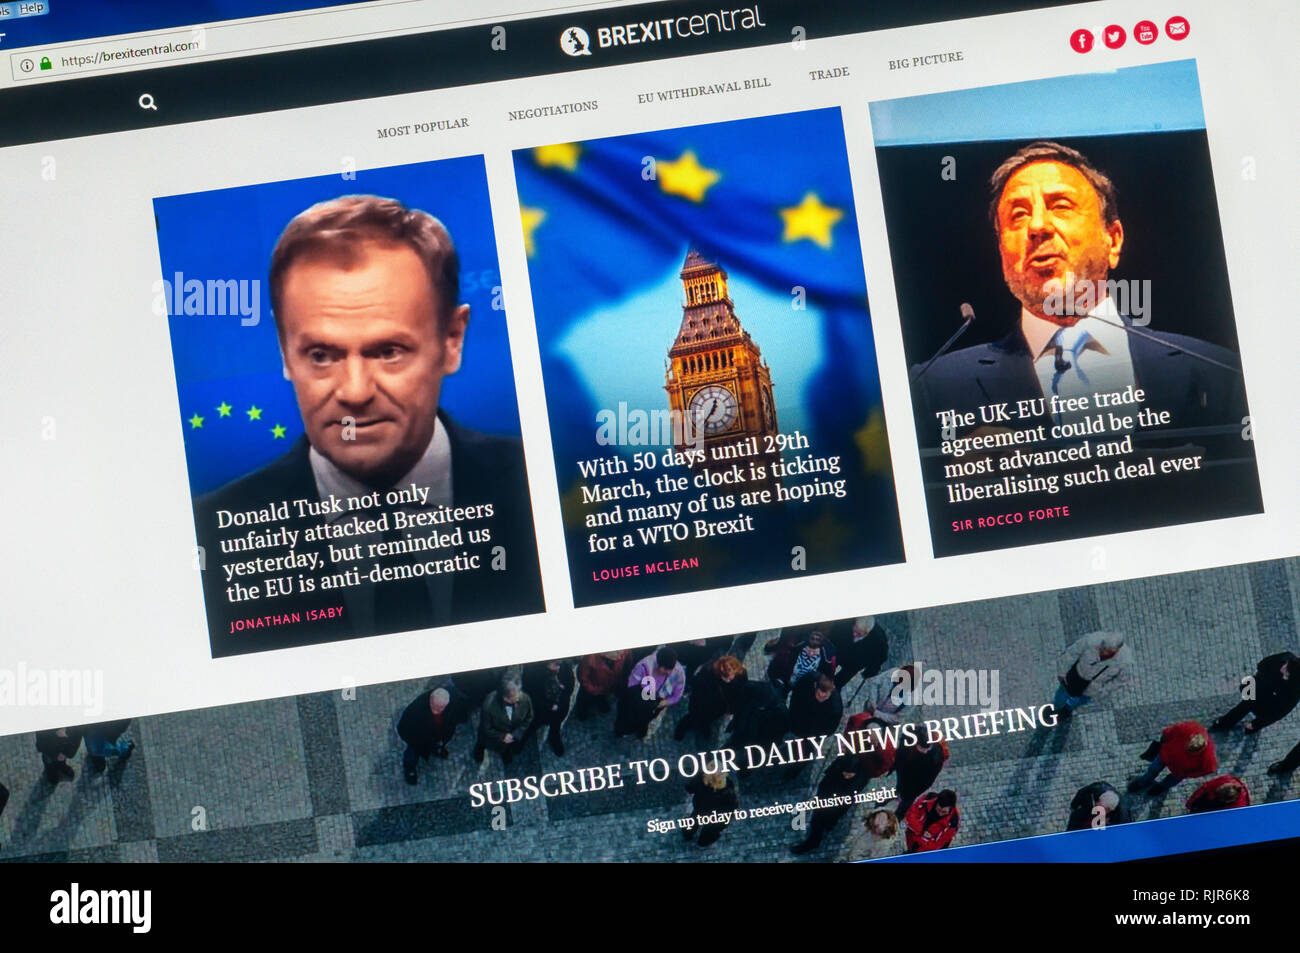 Page d'accueil pro-Brexit Brexit Site Web central. Photo Stock